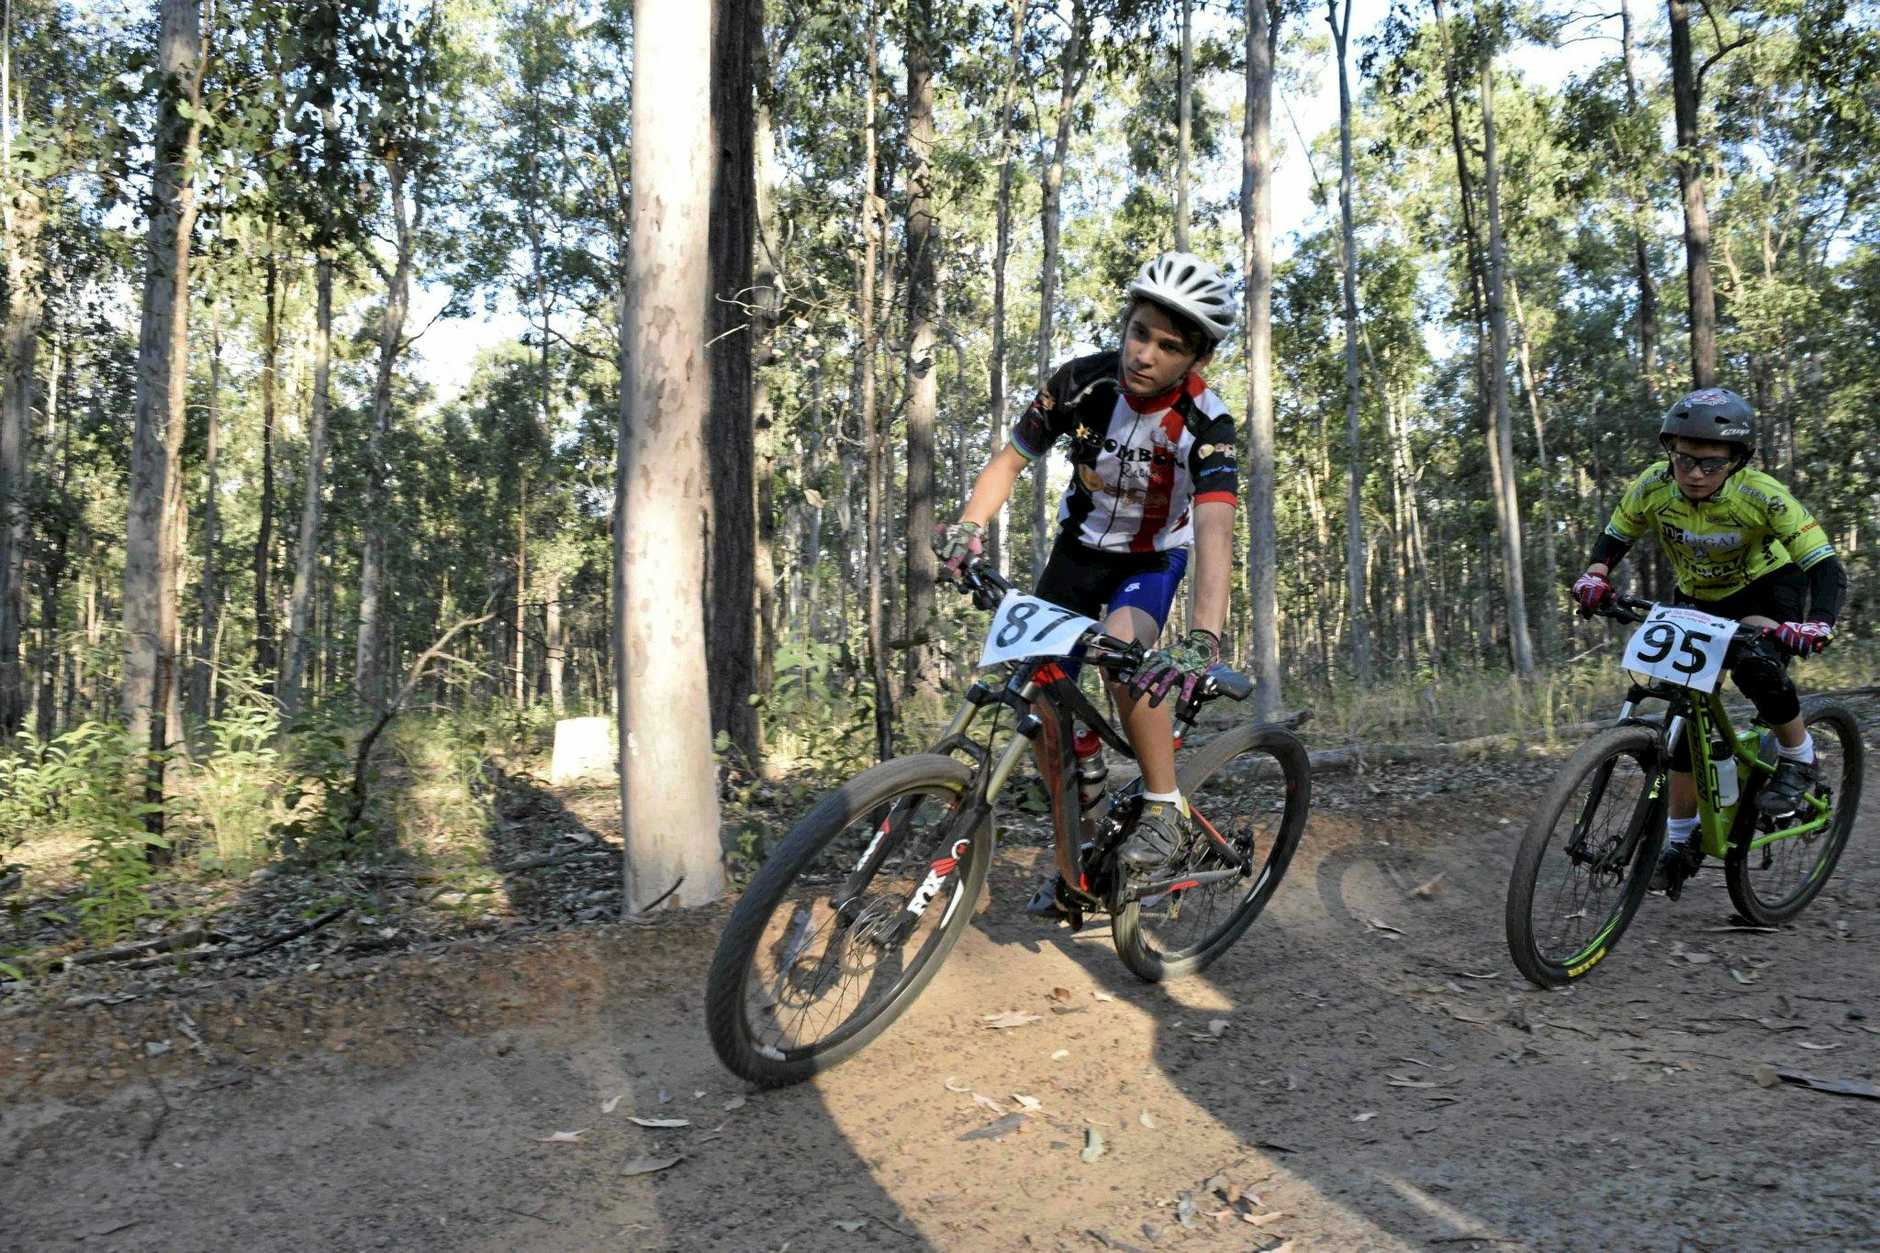 DOWNHILL DUO: Off to compete in the NSW Interschools Downhill competition are Henry White and Dylan Korb. Photo Matthew Elkerton / Daily Examiner